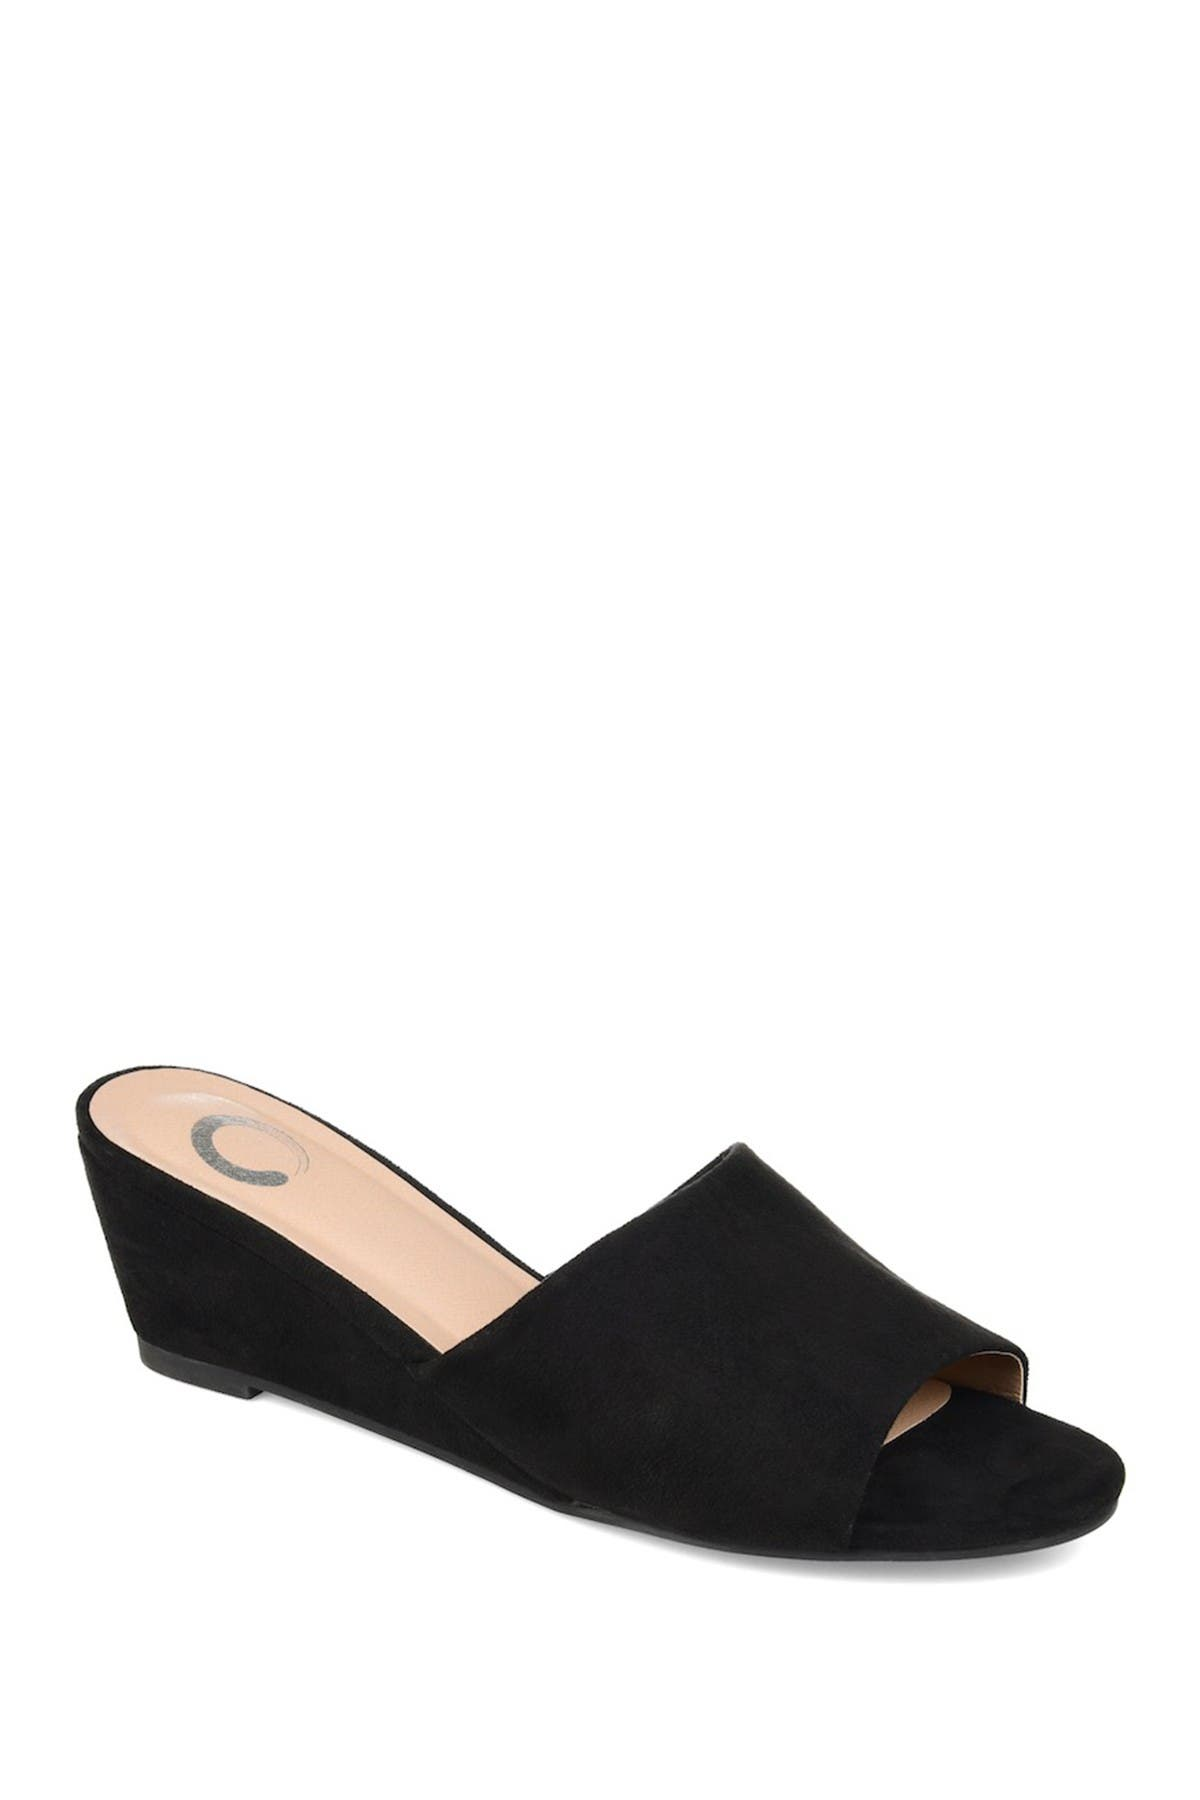 Image of JOURNEE Collection Pavan Wedge Slide Sandal